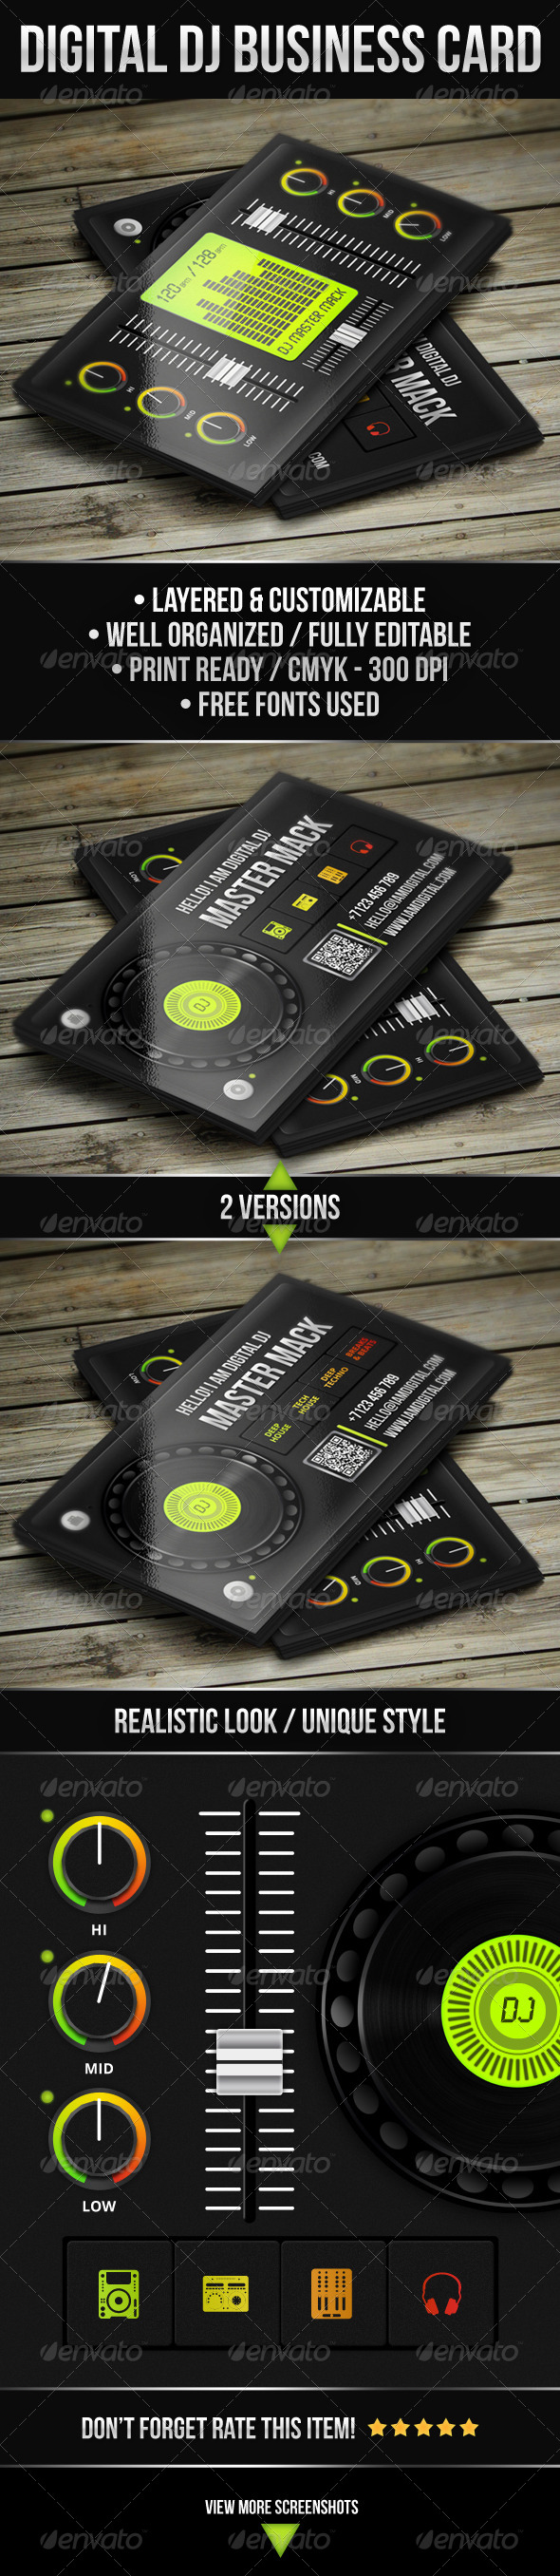 GraphicRiver Digital DJ Business Card 4243840